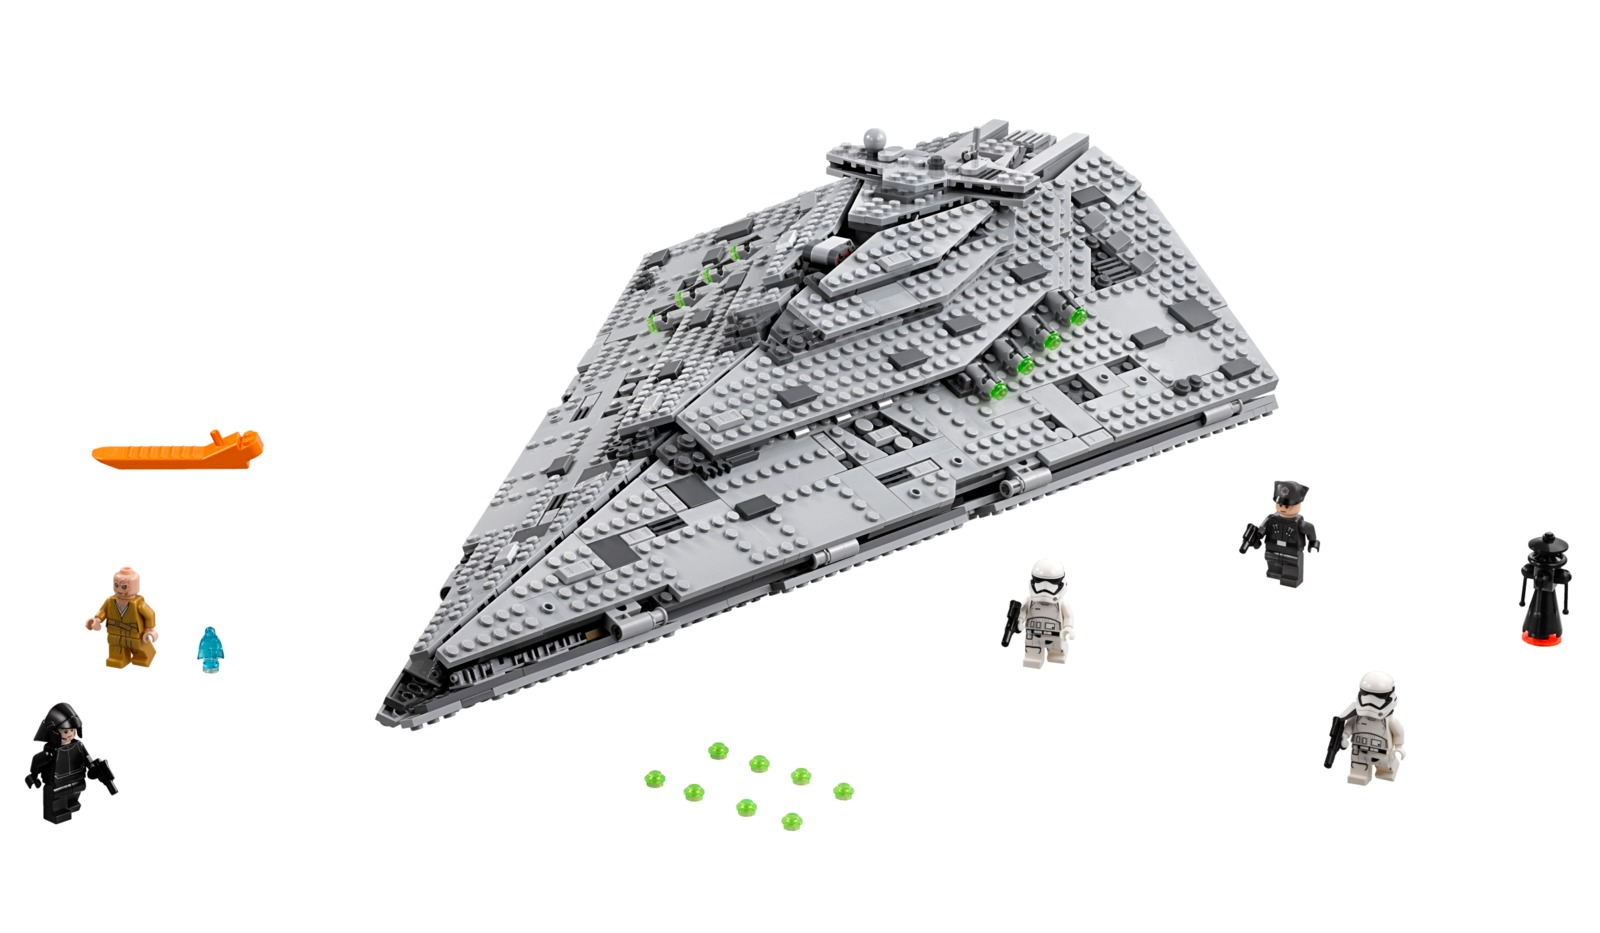 LEGO Star Wars - First Order Star Destroyer (75190) image